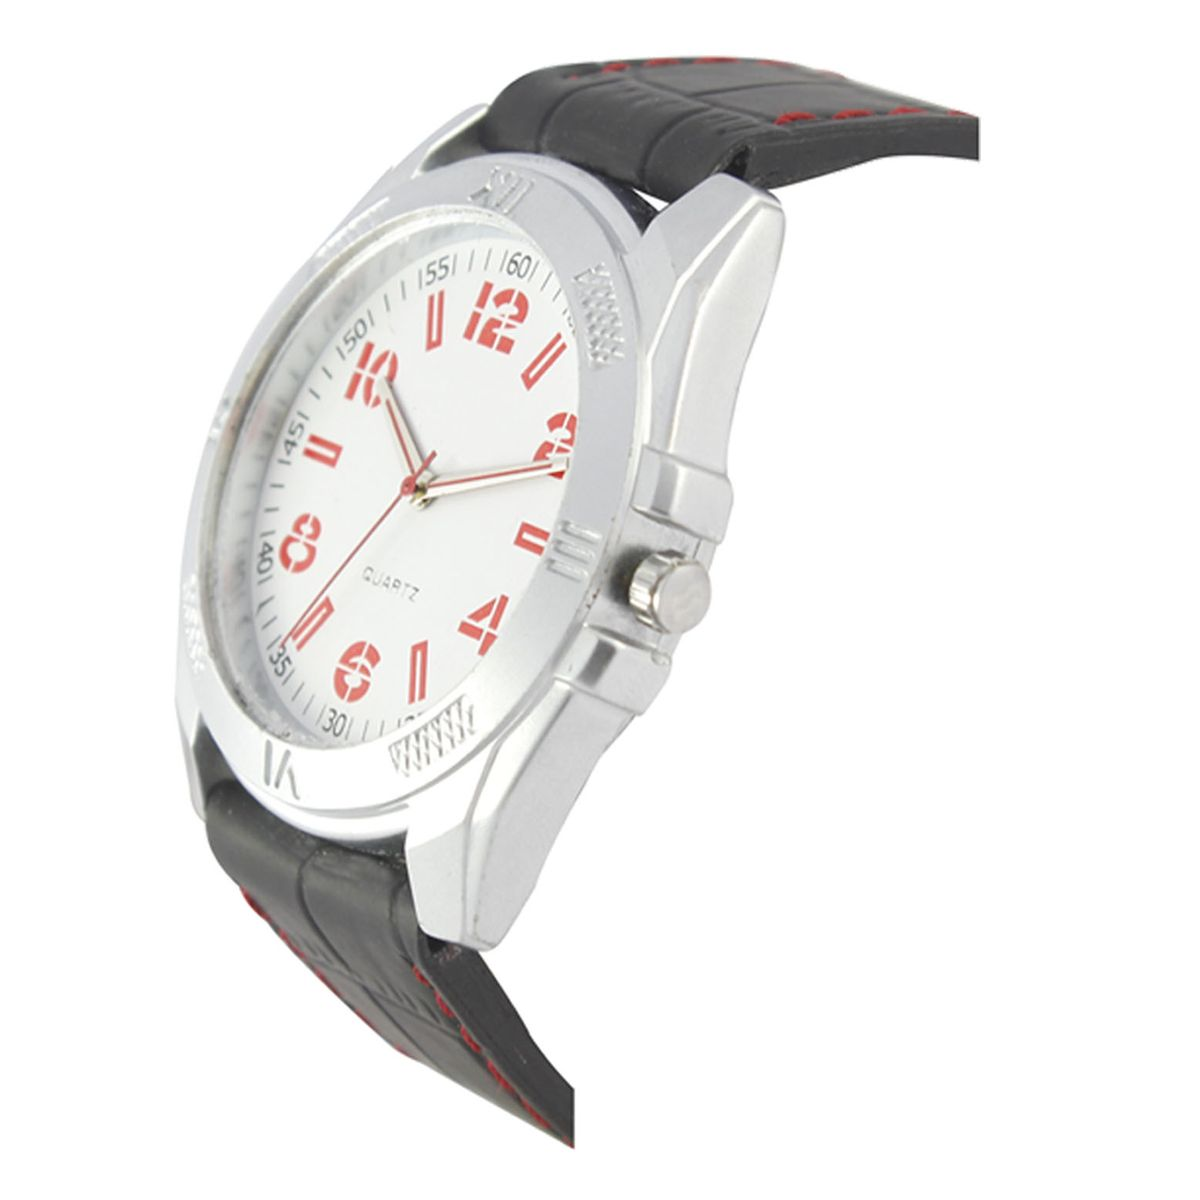 The Shopoholic Analog White Dial Black Leather Belt Watches For Men-Watches For Boys